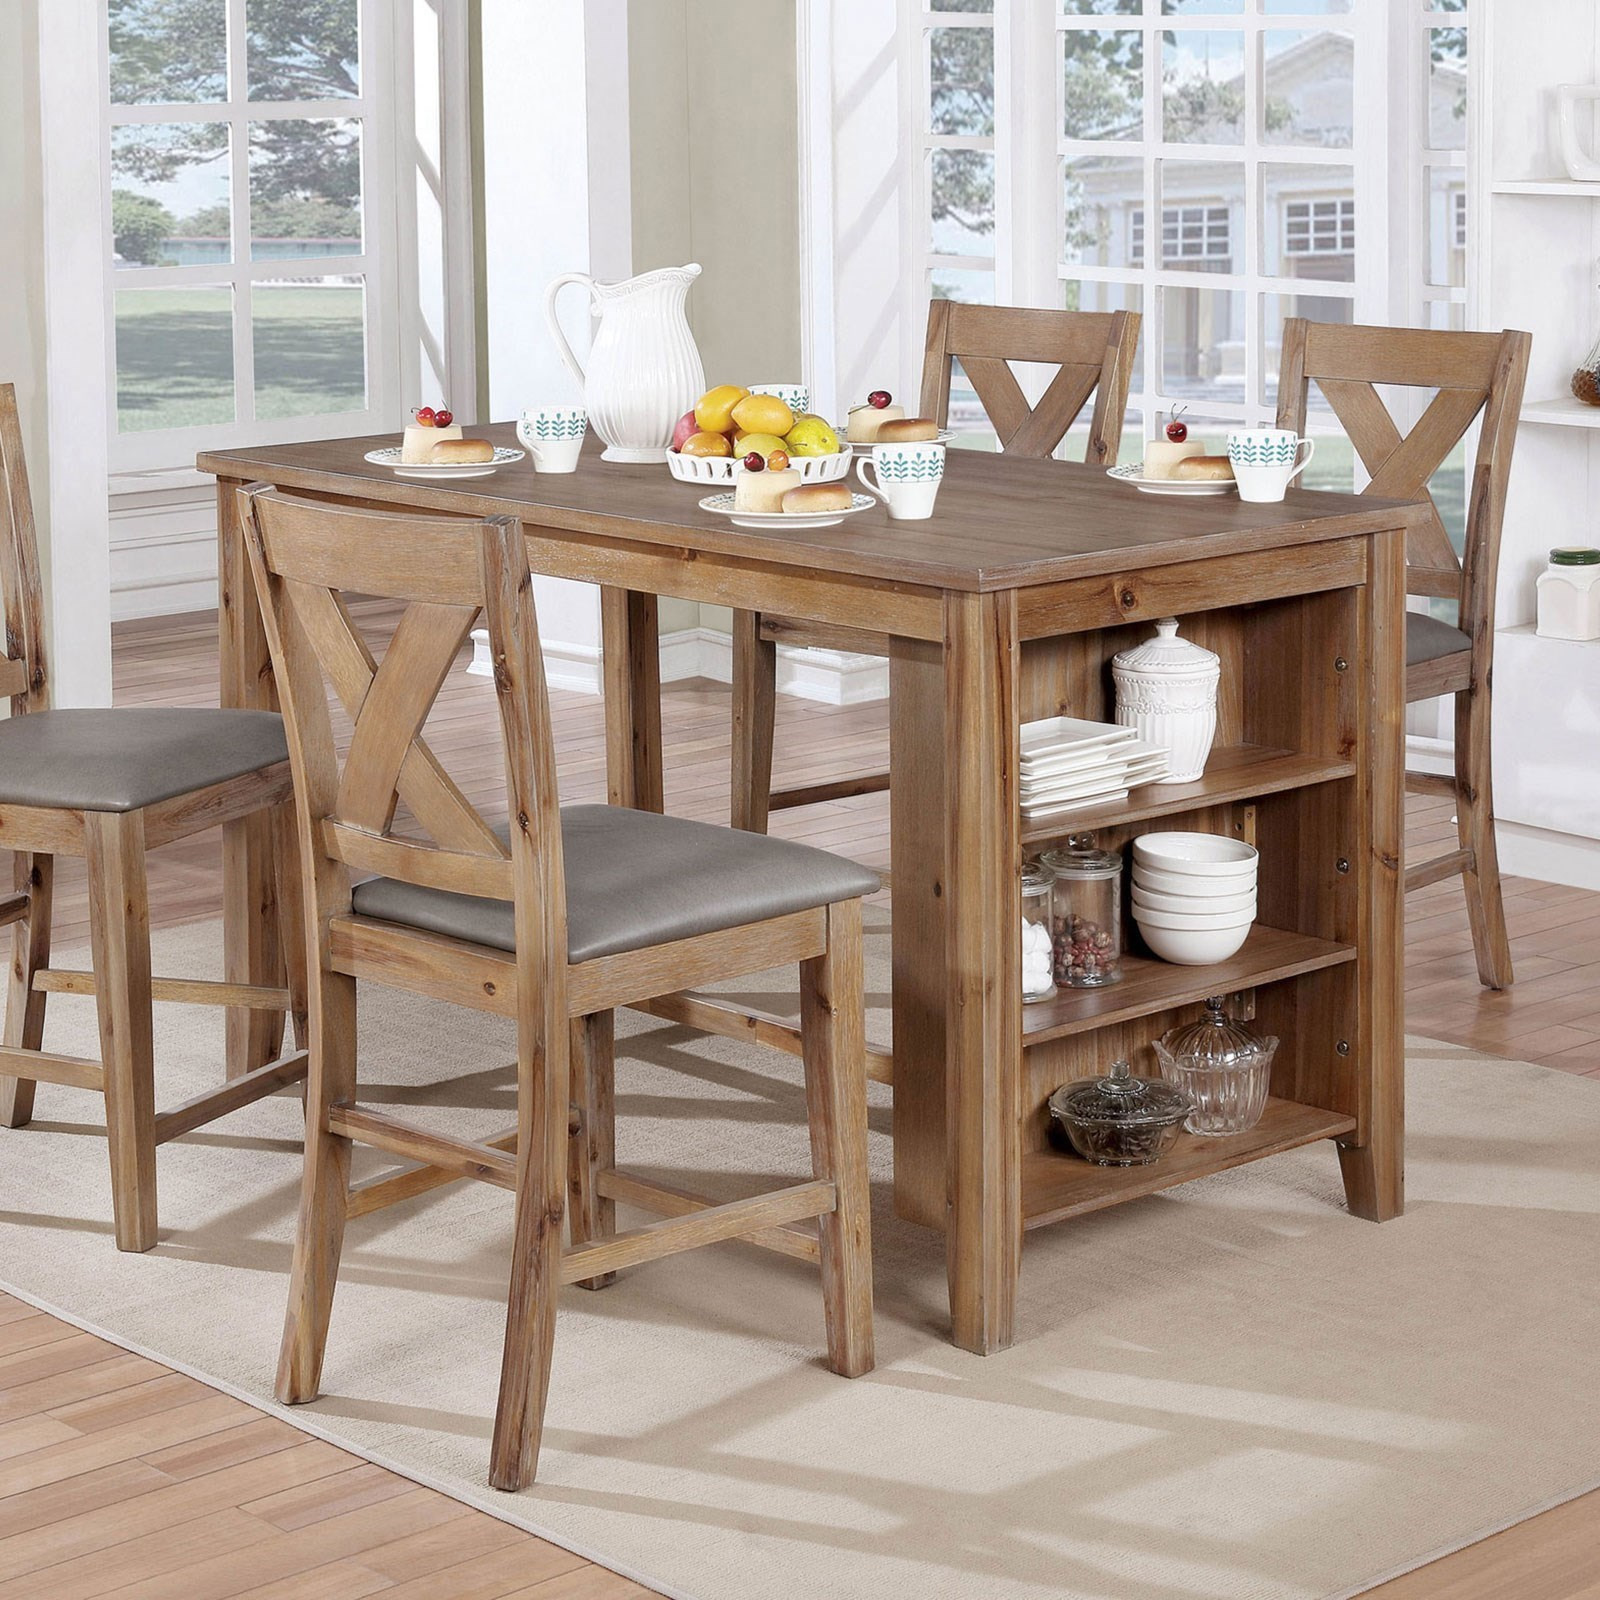 Lana Counter Height Table by Furniture of America at Nassau Furniture and Mattress